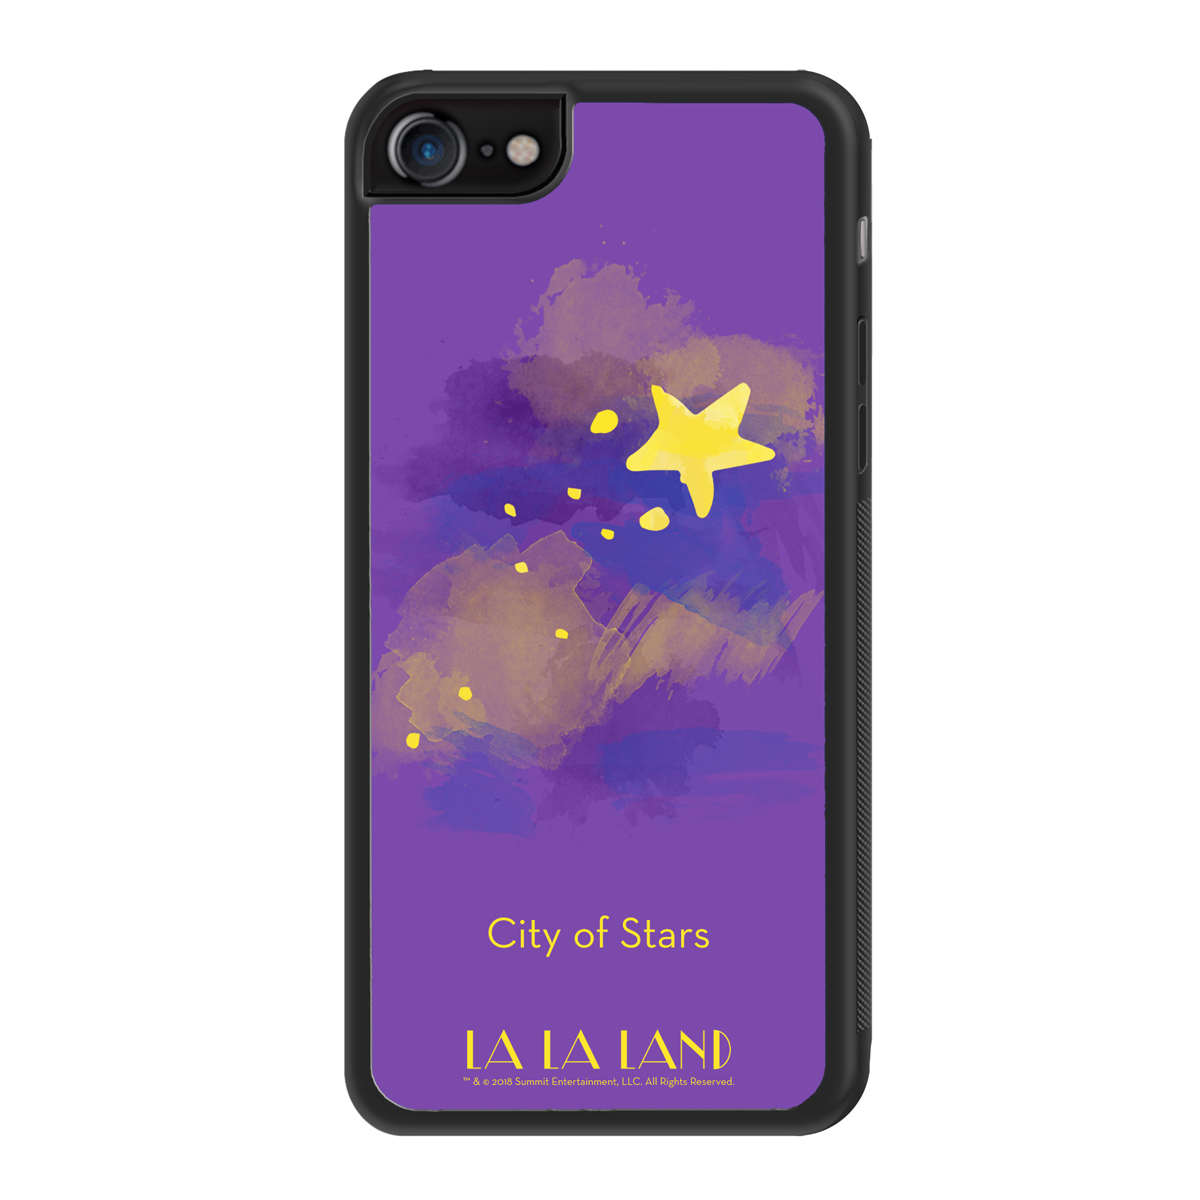 La La Land Stars iPhone 8 Case